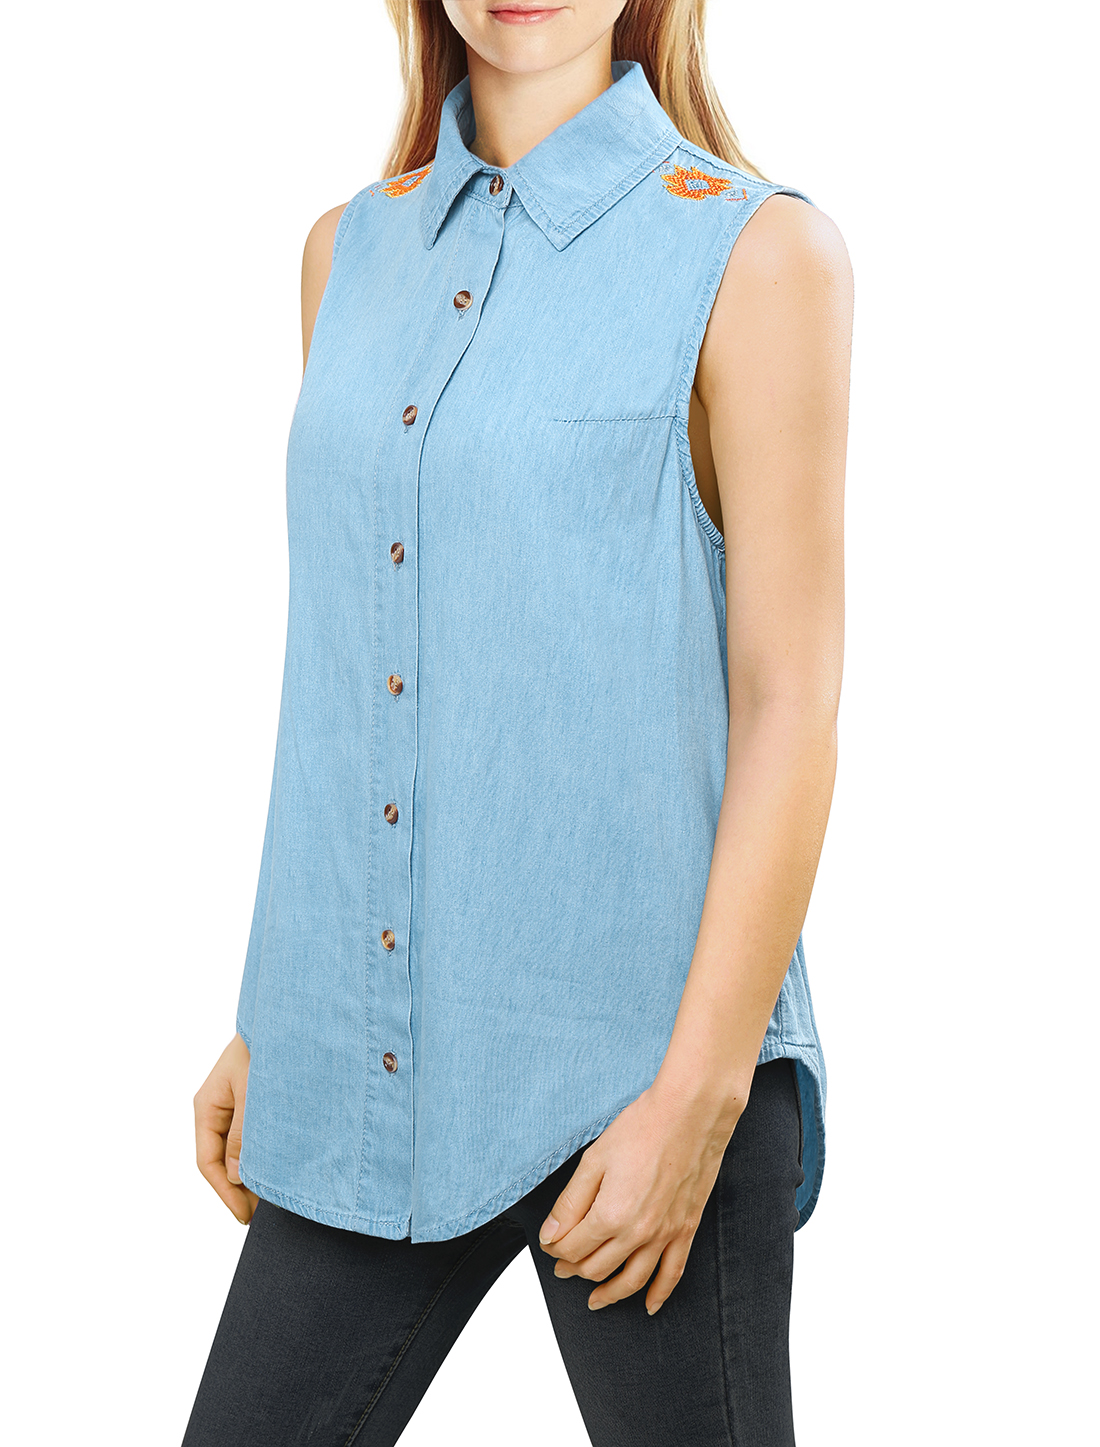 Women Embroidered Sleeveless Denim Shirt w Cut Out Back Blue XL